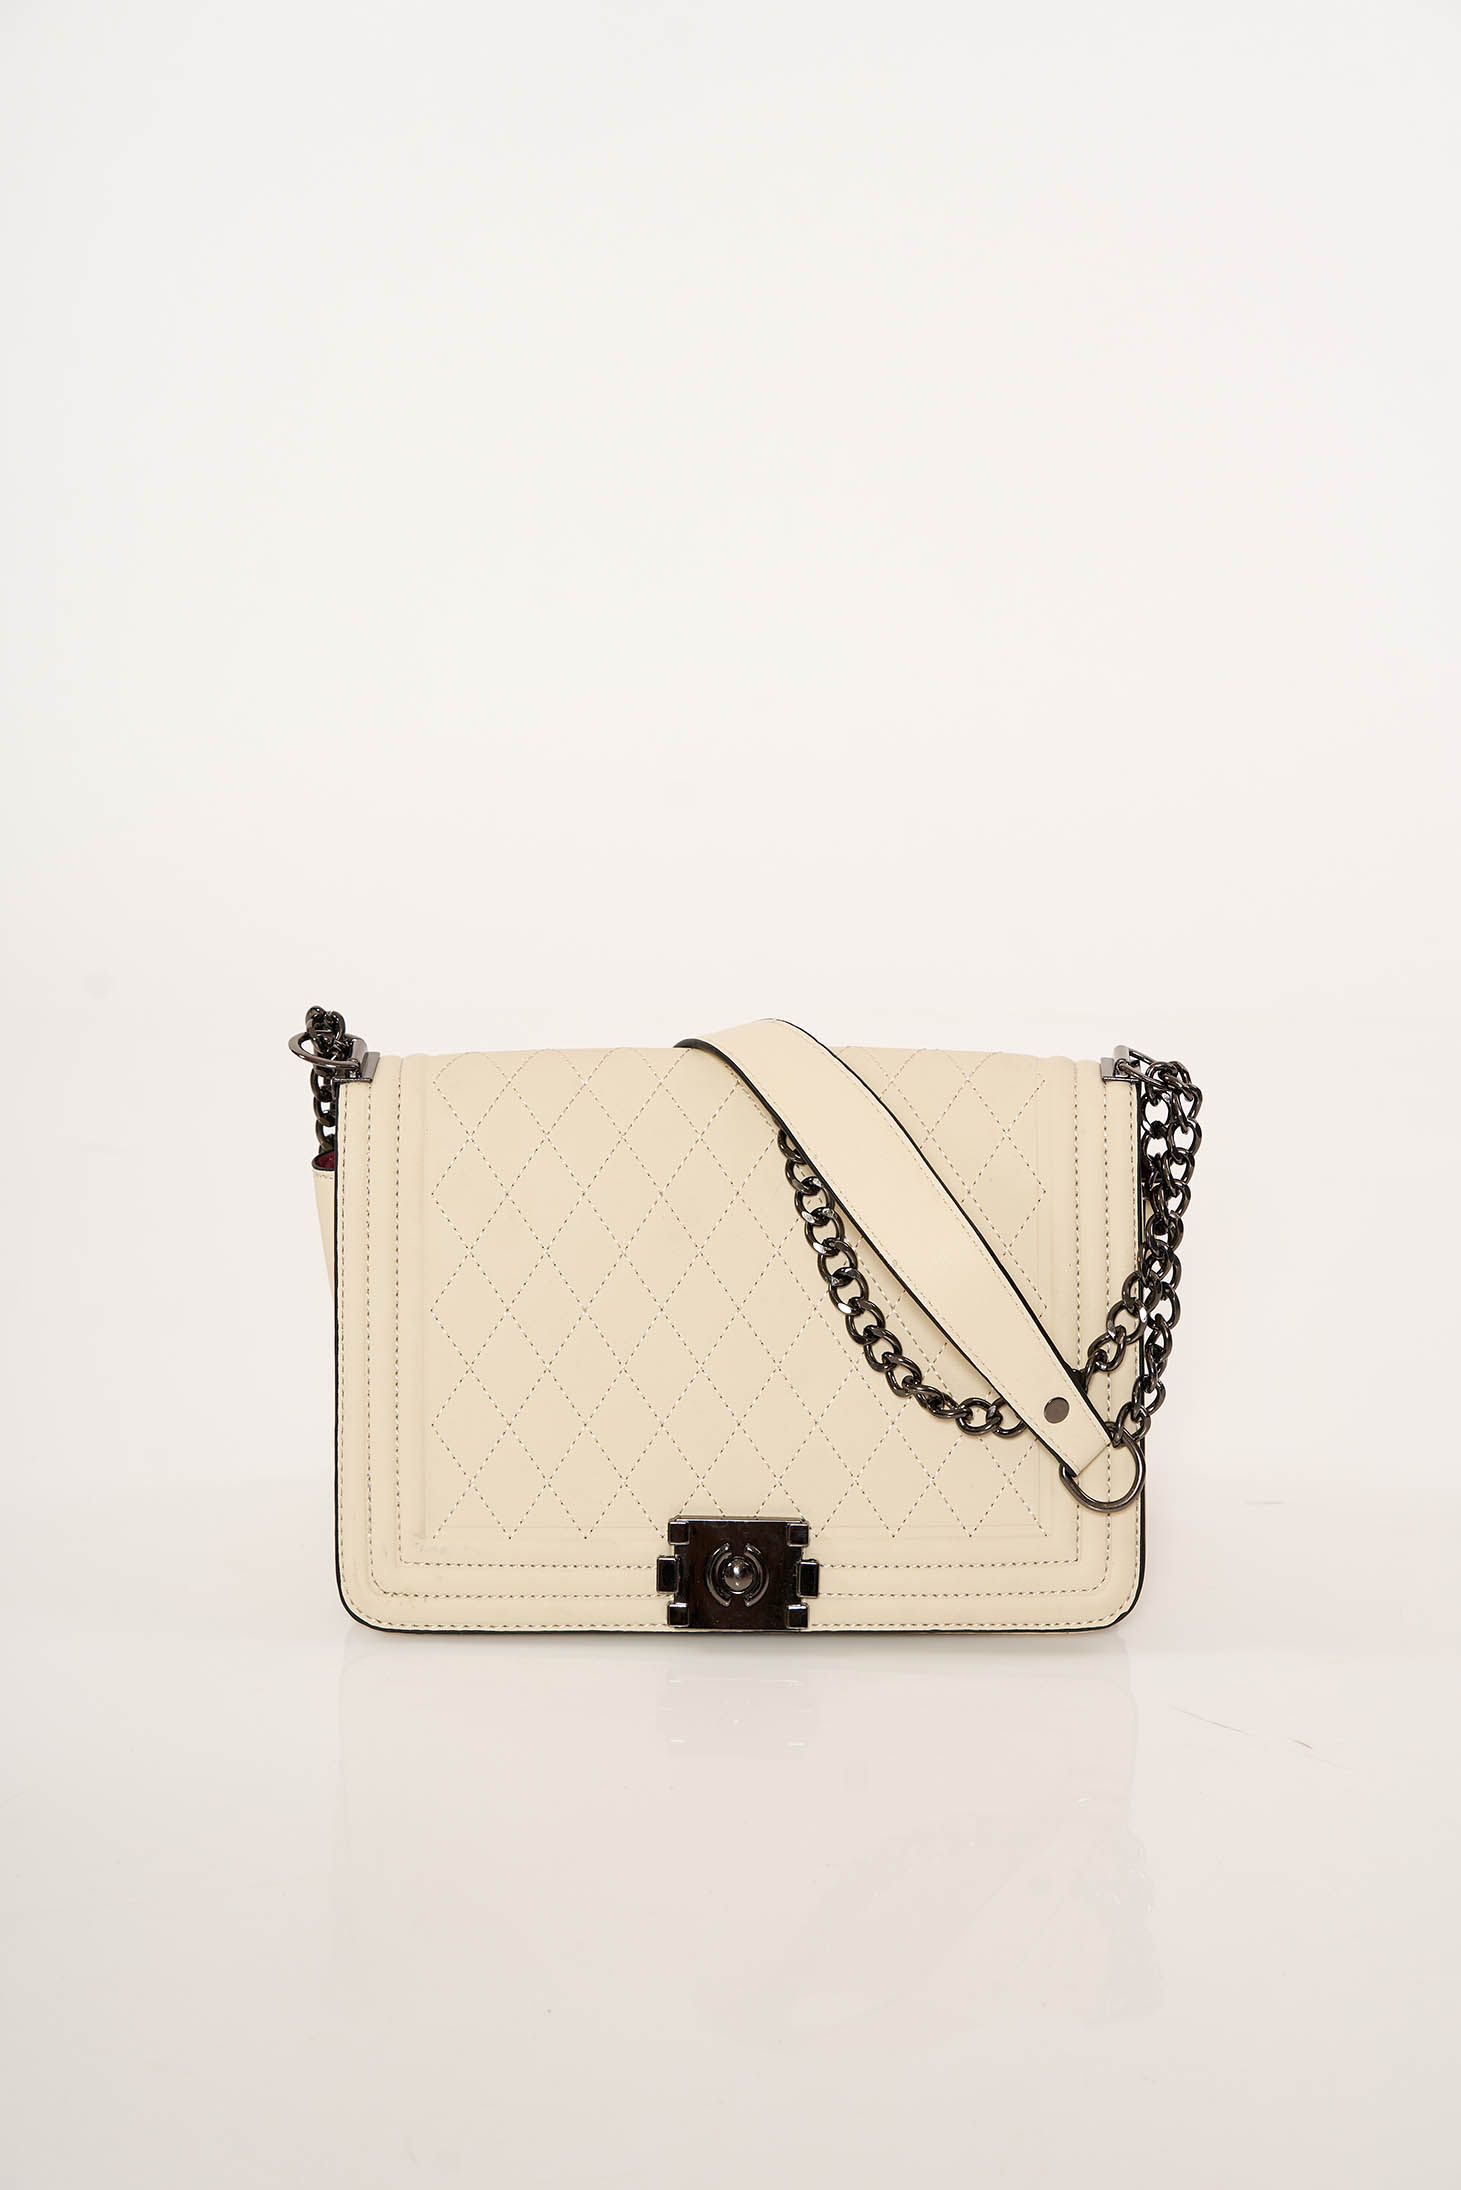 Cream casual bag from ecological leather long chain handle